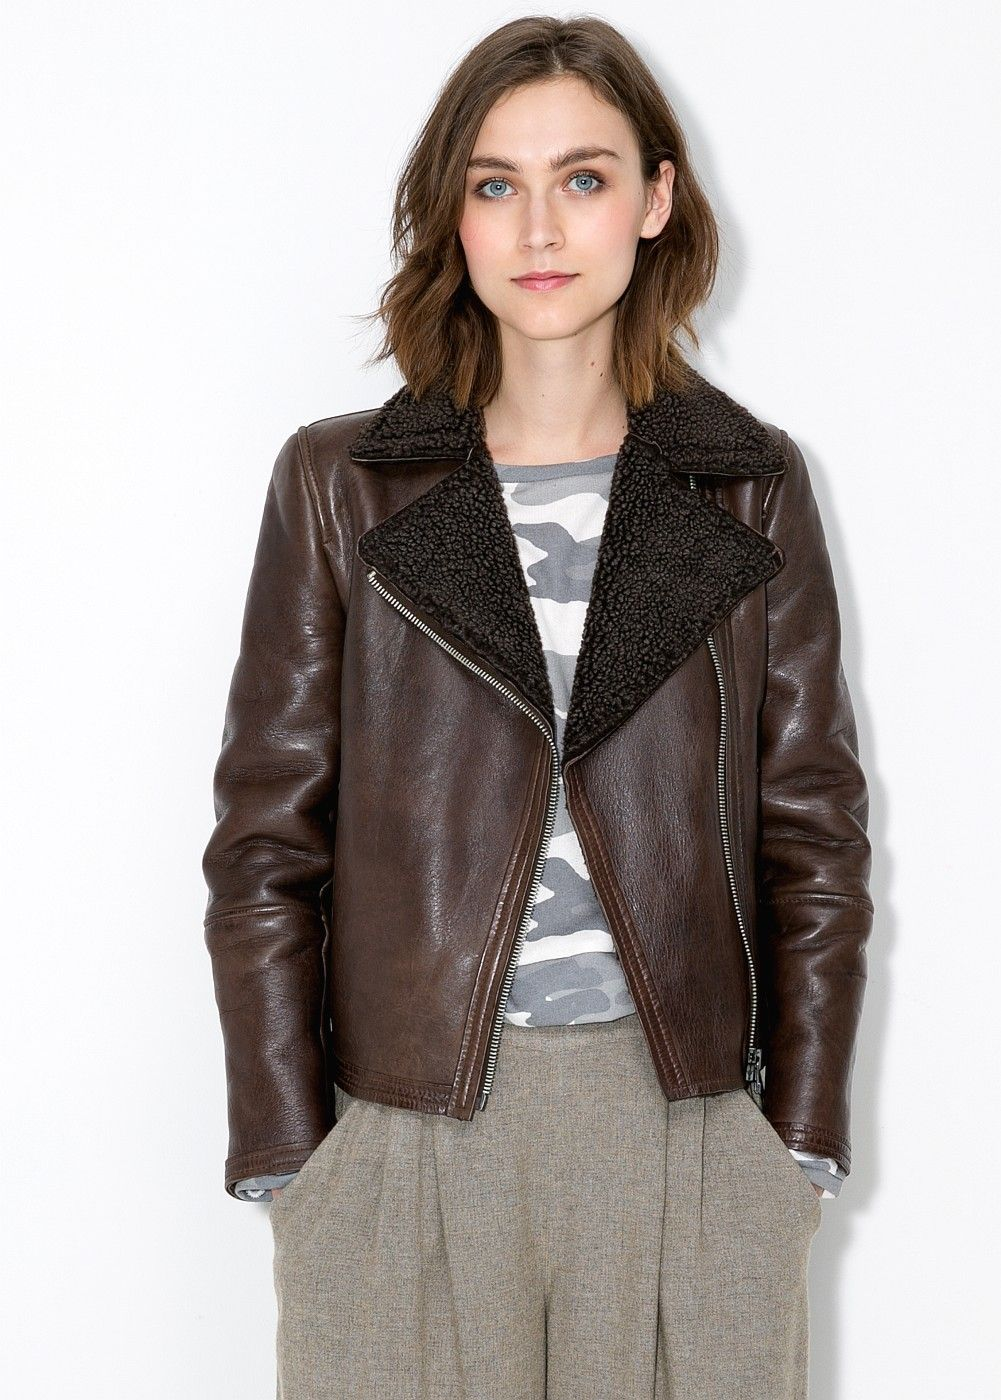 Shearling-lined leather jacket | Coats, Jackets for women and ...